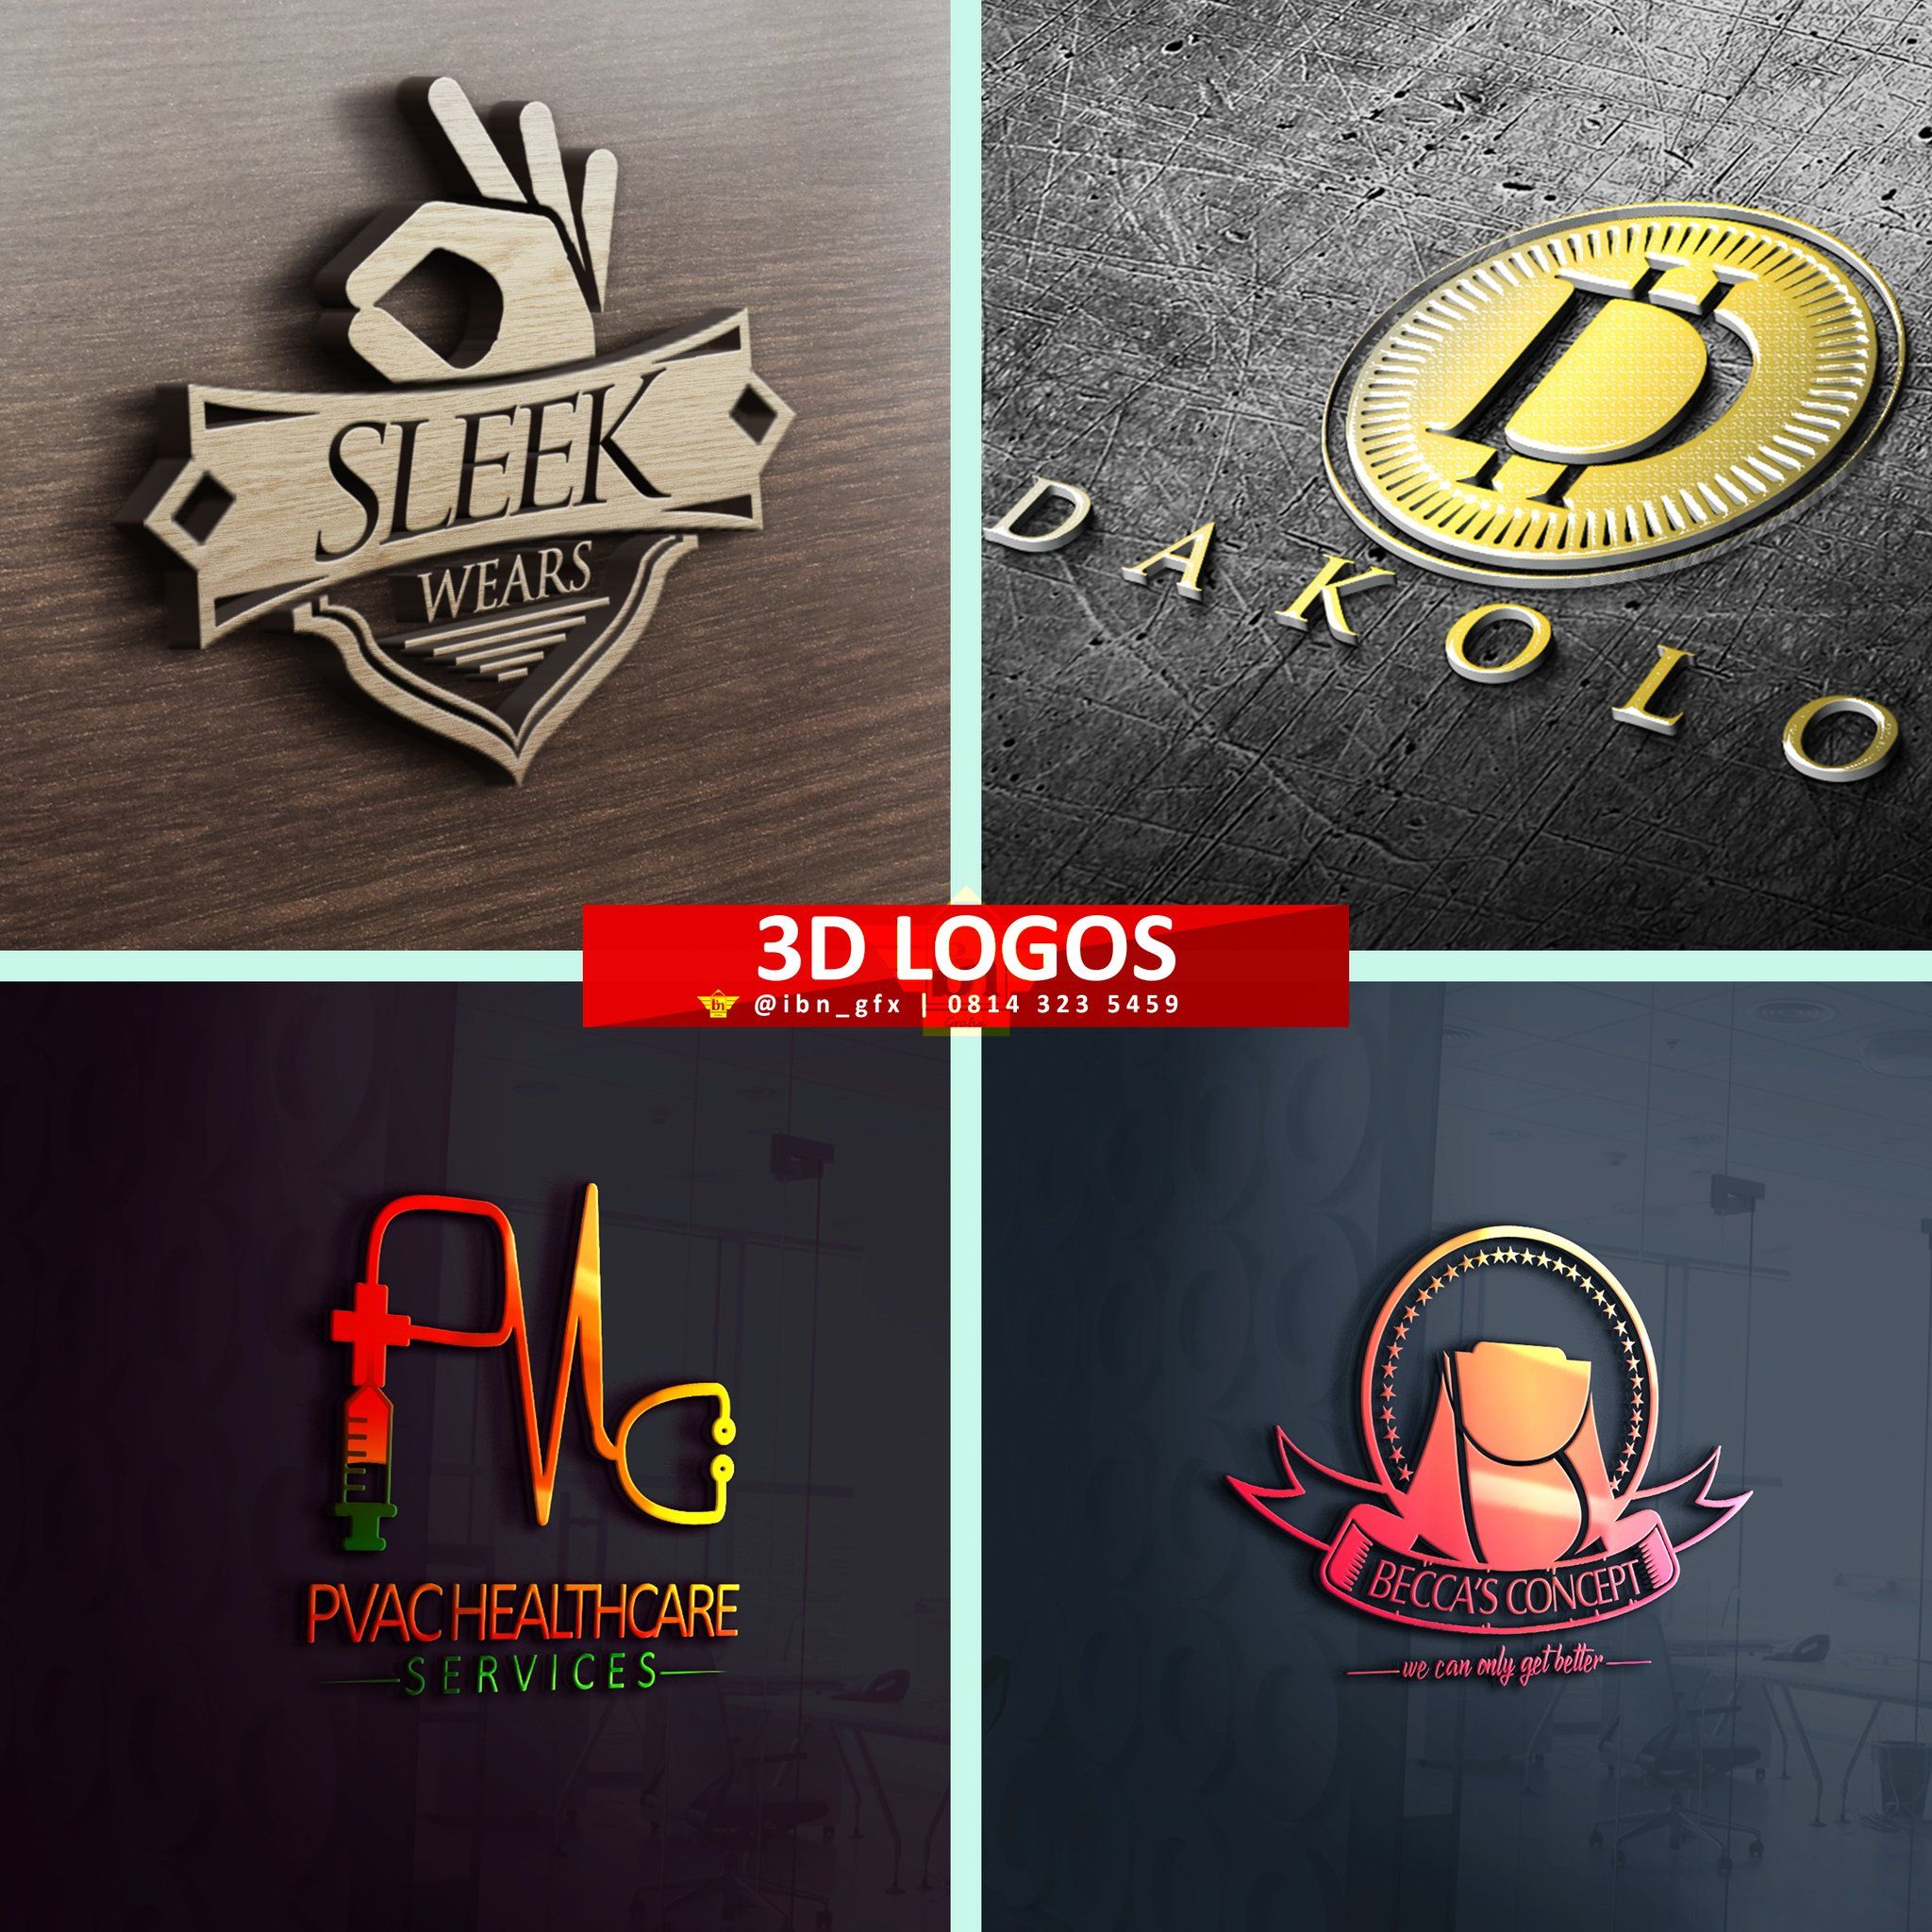 ibn on twitter up and taking orders do you need a logo hit my dm kindly retweet my client s might be on your tl thanks hit my dm kindly retweet